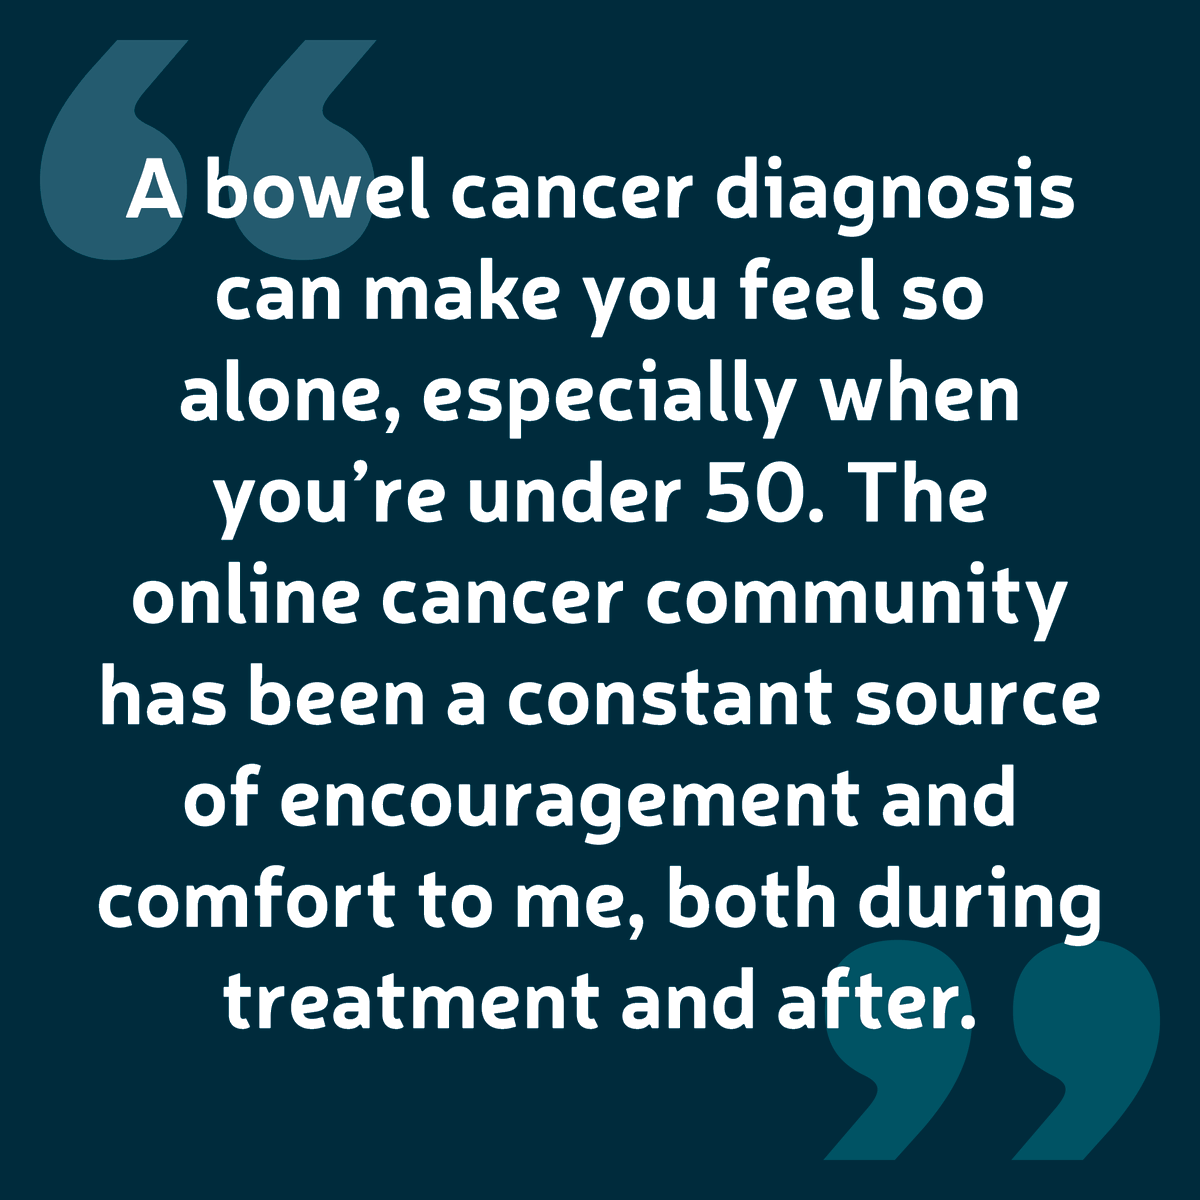 Bowel Cancer Uk On Twitter Our Community Forum Provides A Safe Place For Anyone Affected By Bowelcancer To Talk About Their Experiences Share Their Knowledge And Support Each Other We Never Want